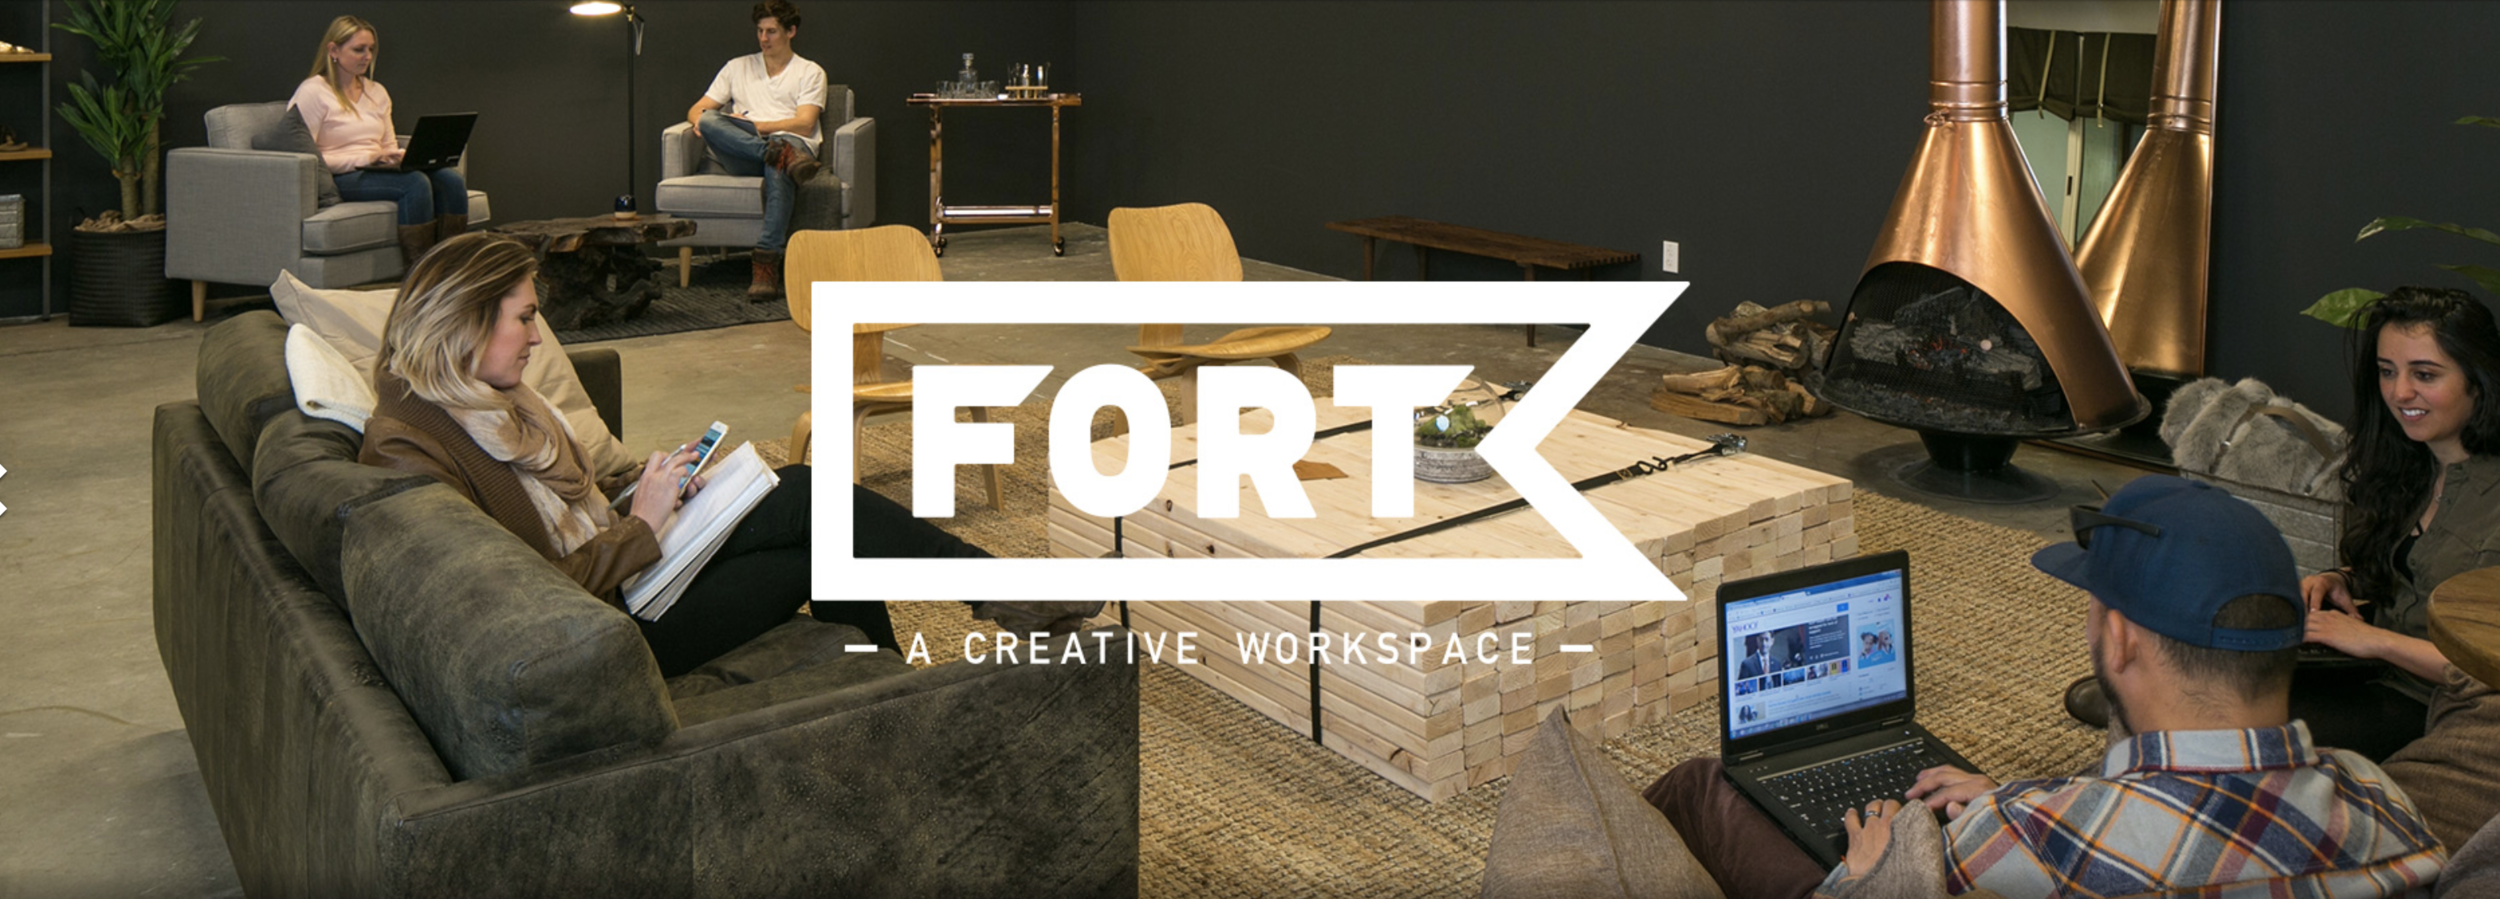 Th Fort coworking space